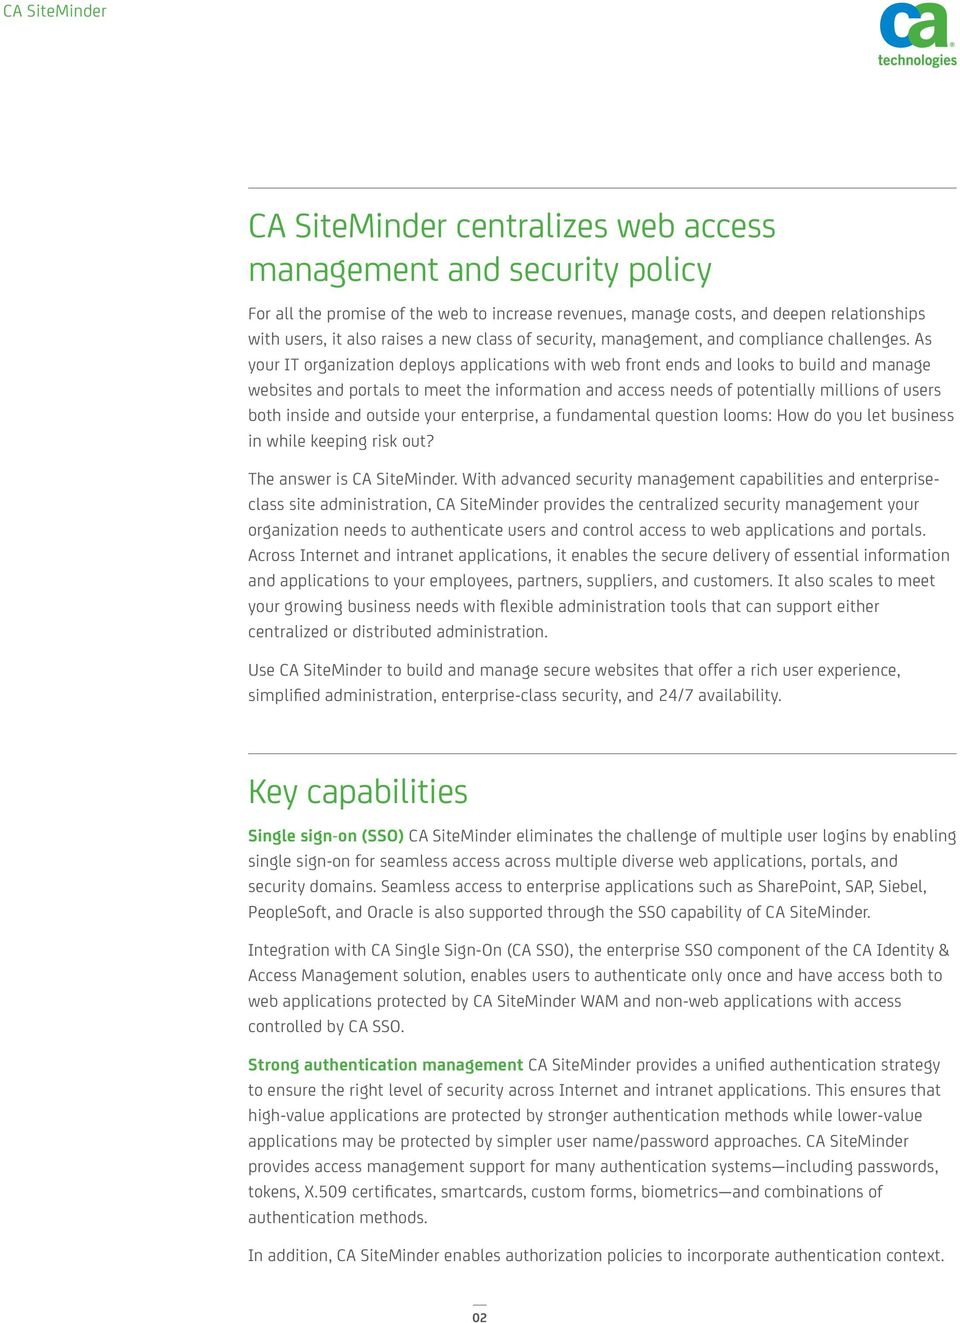 As your IT organization deploys applications with web front ends and looks to build and manage websites and portals to meet the information and access needs of potentially millions of users both